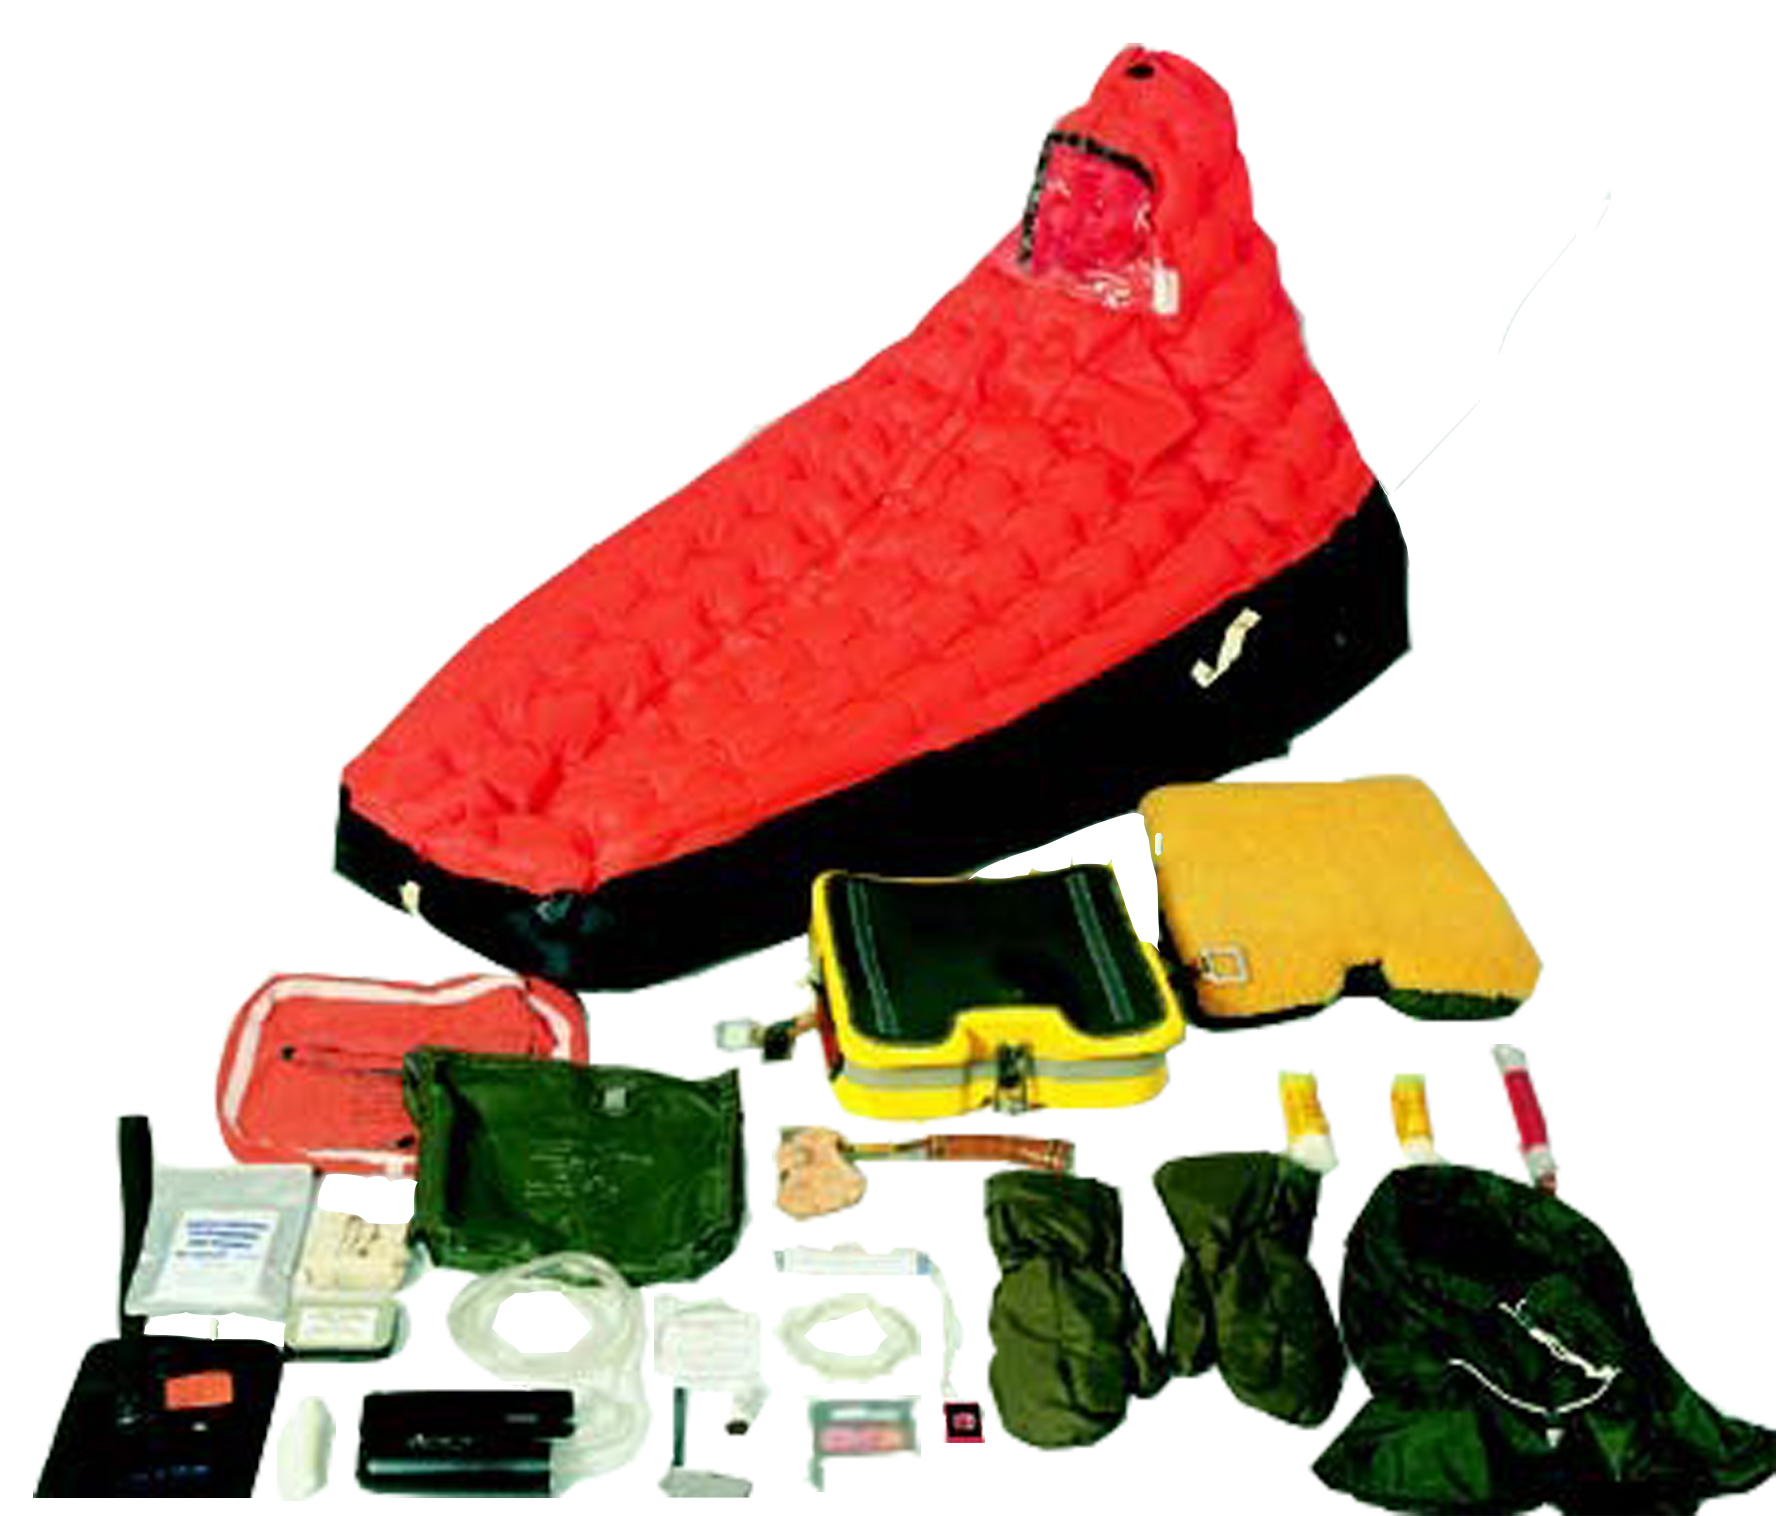 IrvinGQ PSP Personal Survival Packs - Search and Rescue